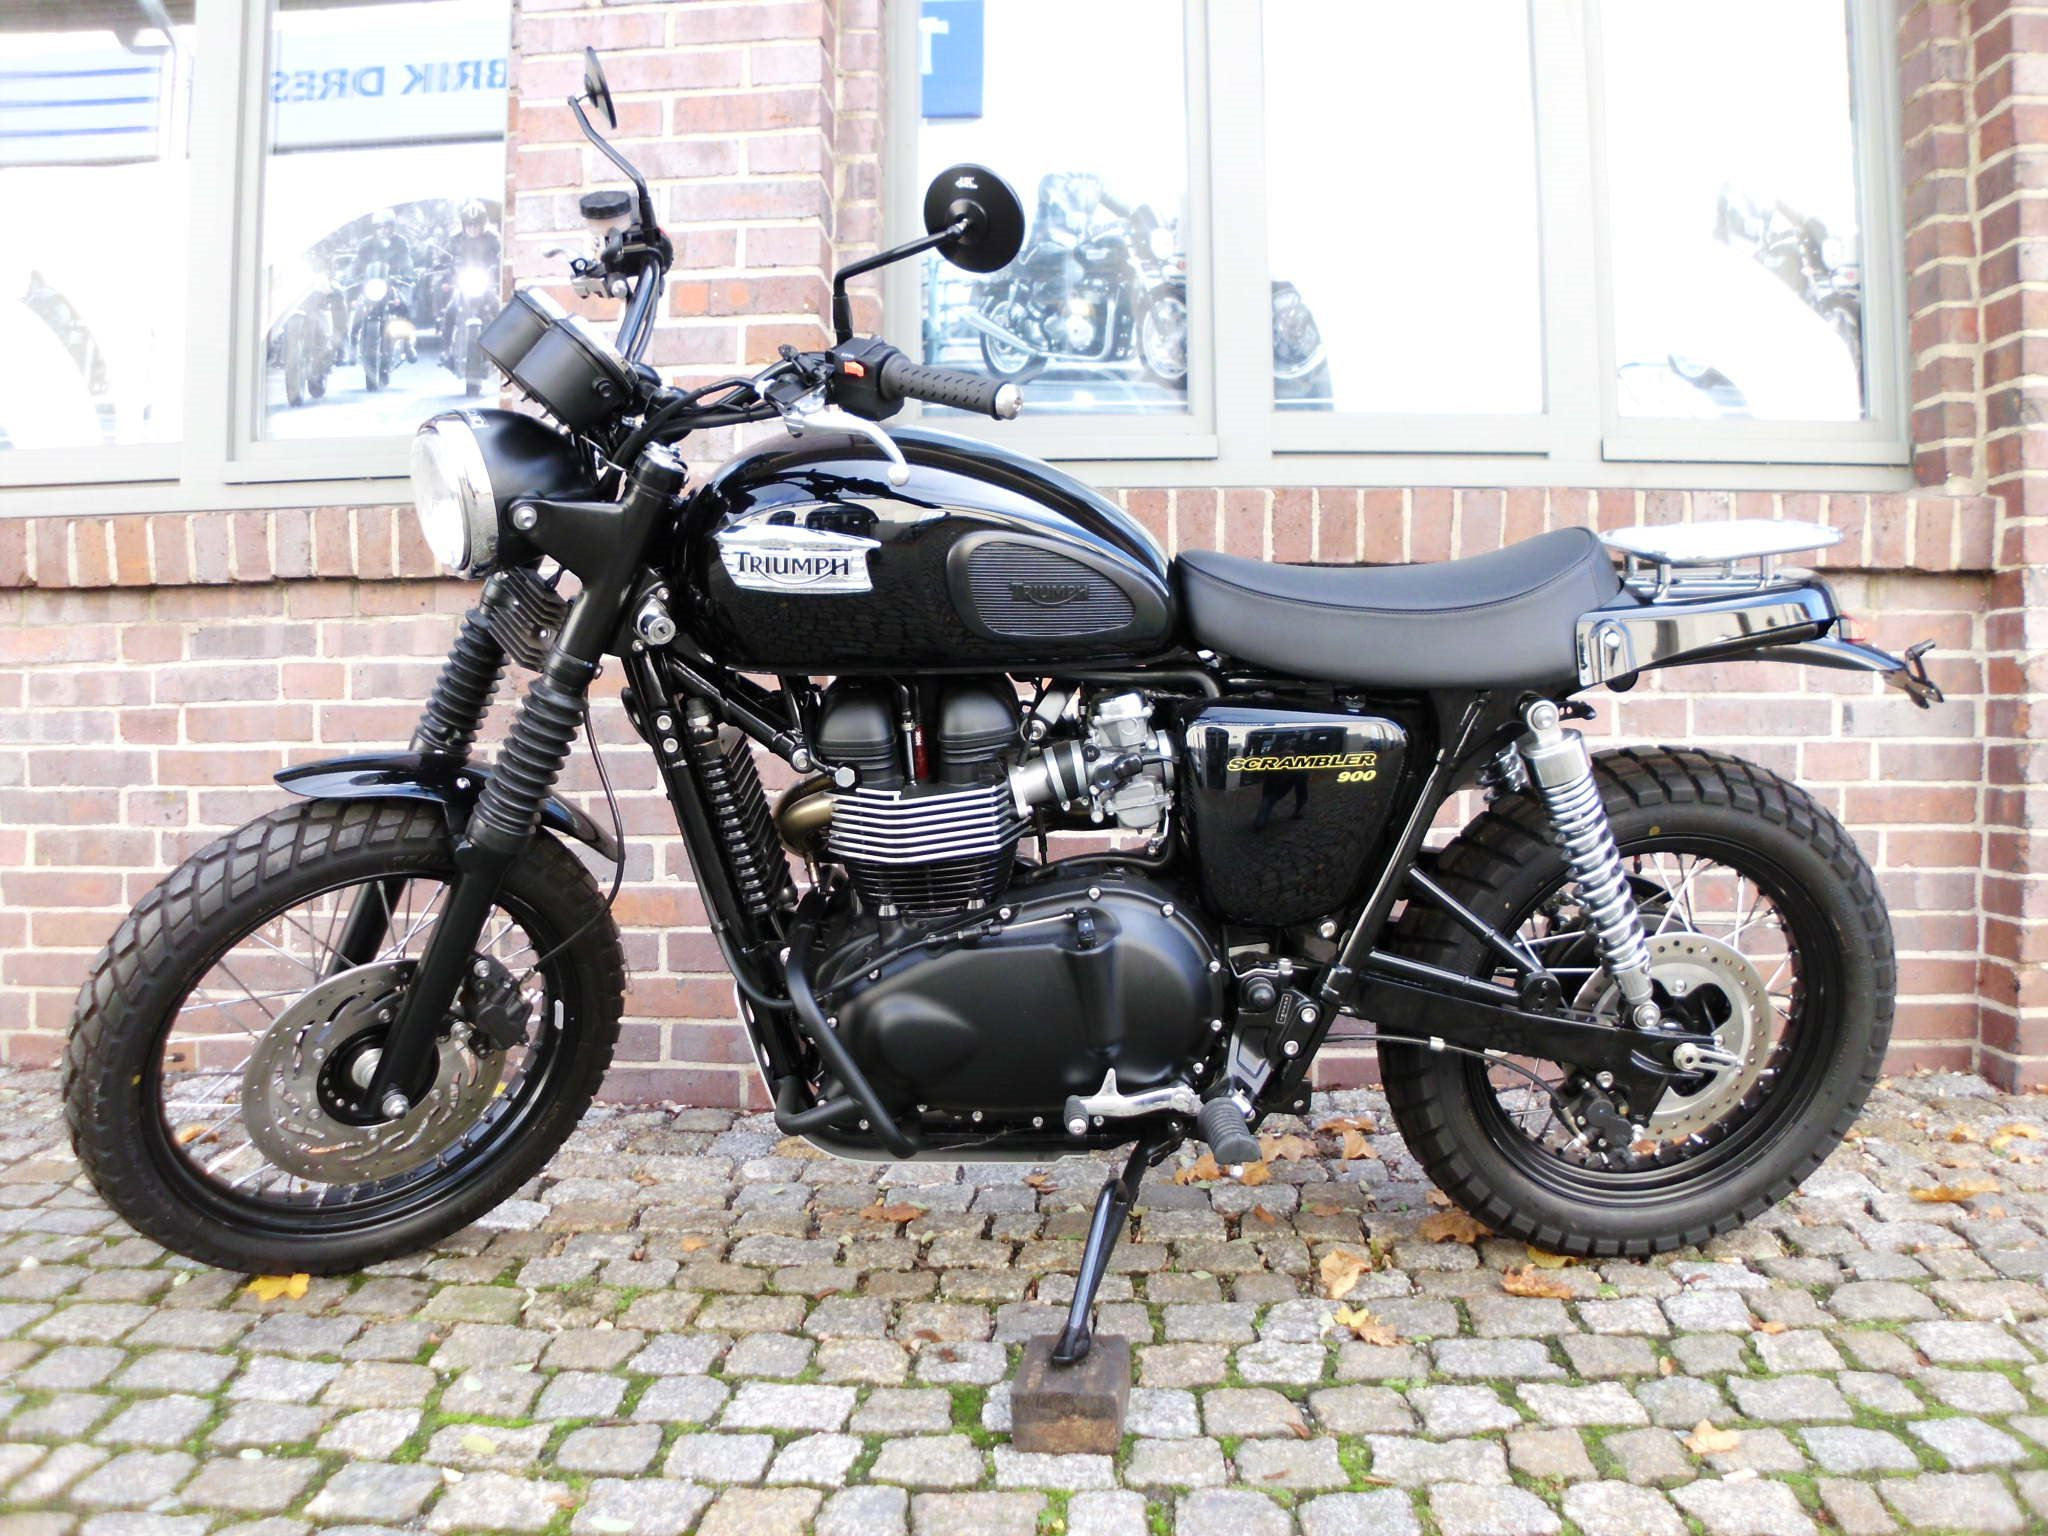 umgebautes motorrad triumph scrambler von kehl klingenberger gbr. Black Bedroom Furniture Sets. Home Design Ideas